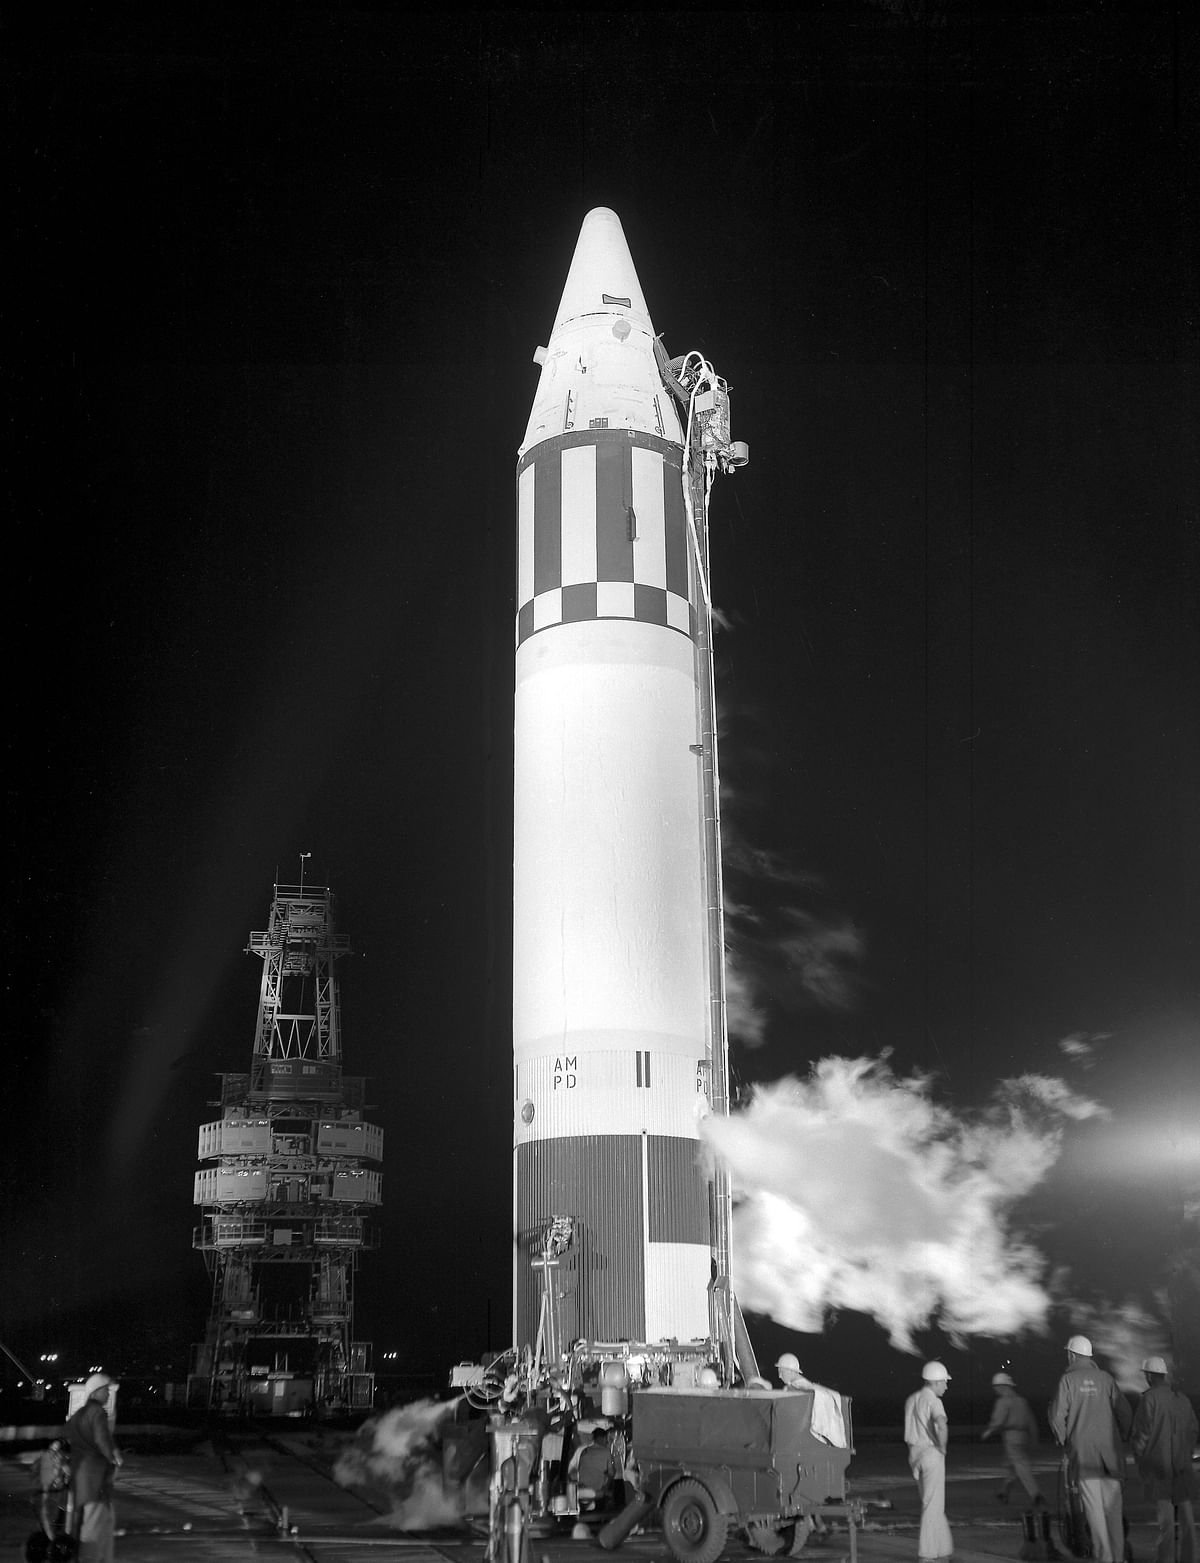 Jupiter AM-18 stands ready for its 2:39 am on May 28 forlaunch at Cape Canaveral launch complex 26B. (Photo Courtesy: Wikimedia Commons)